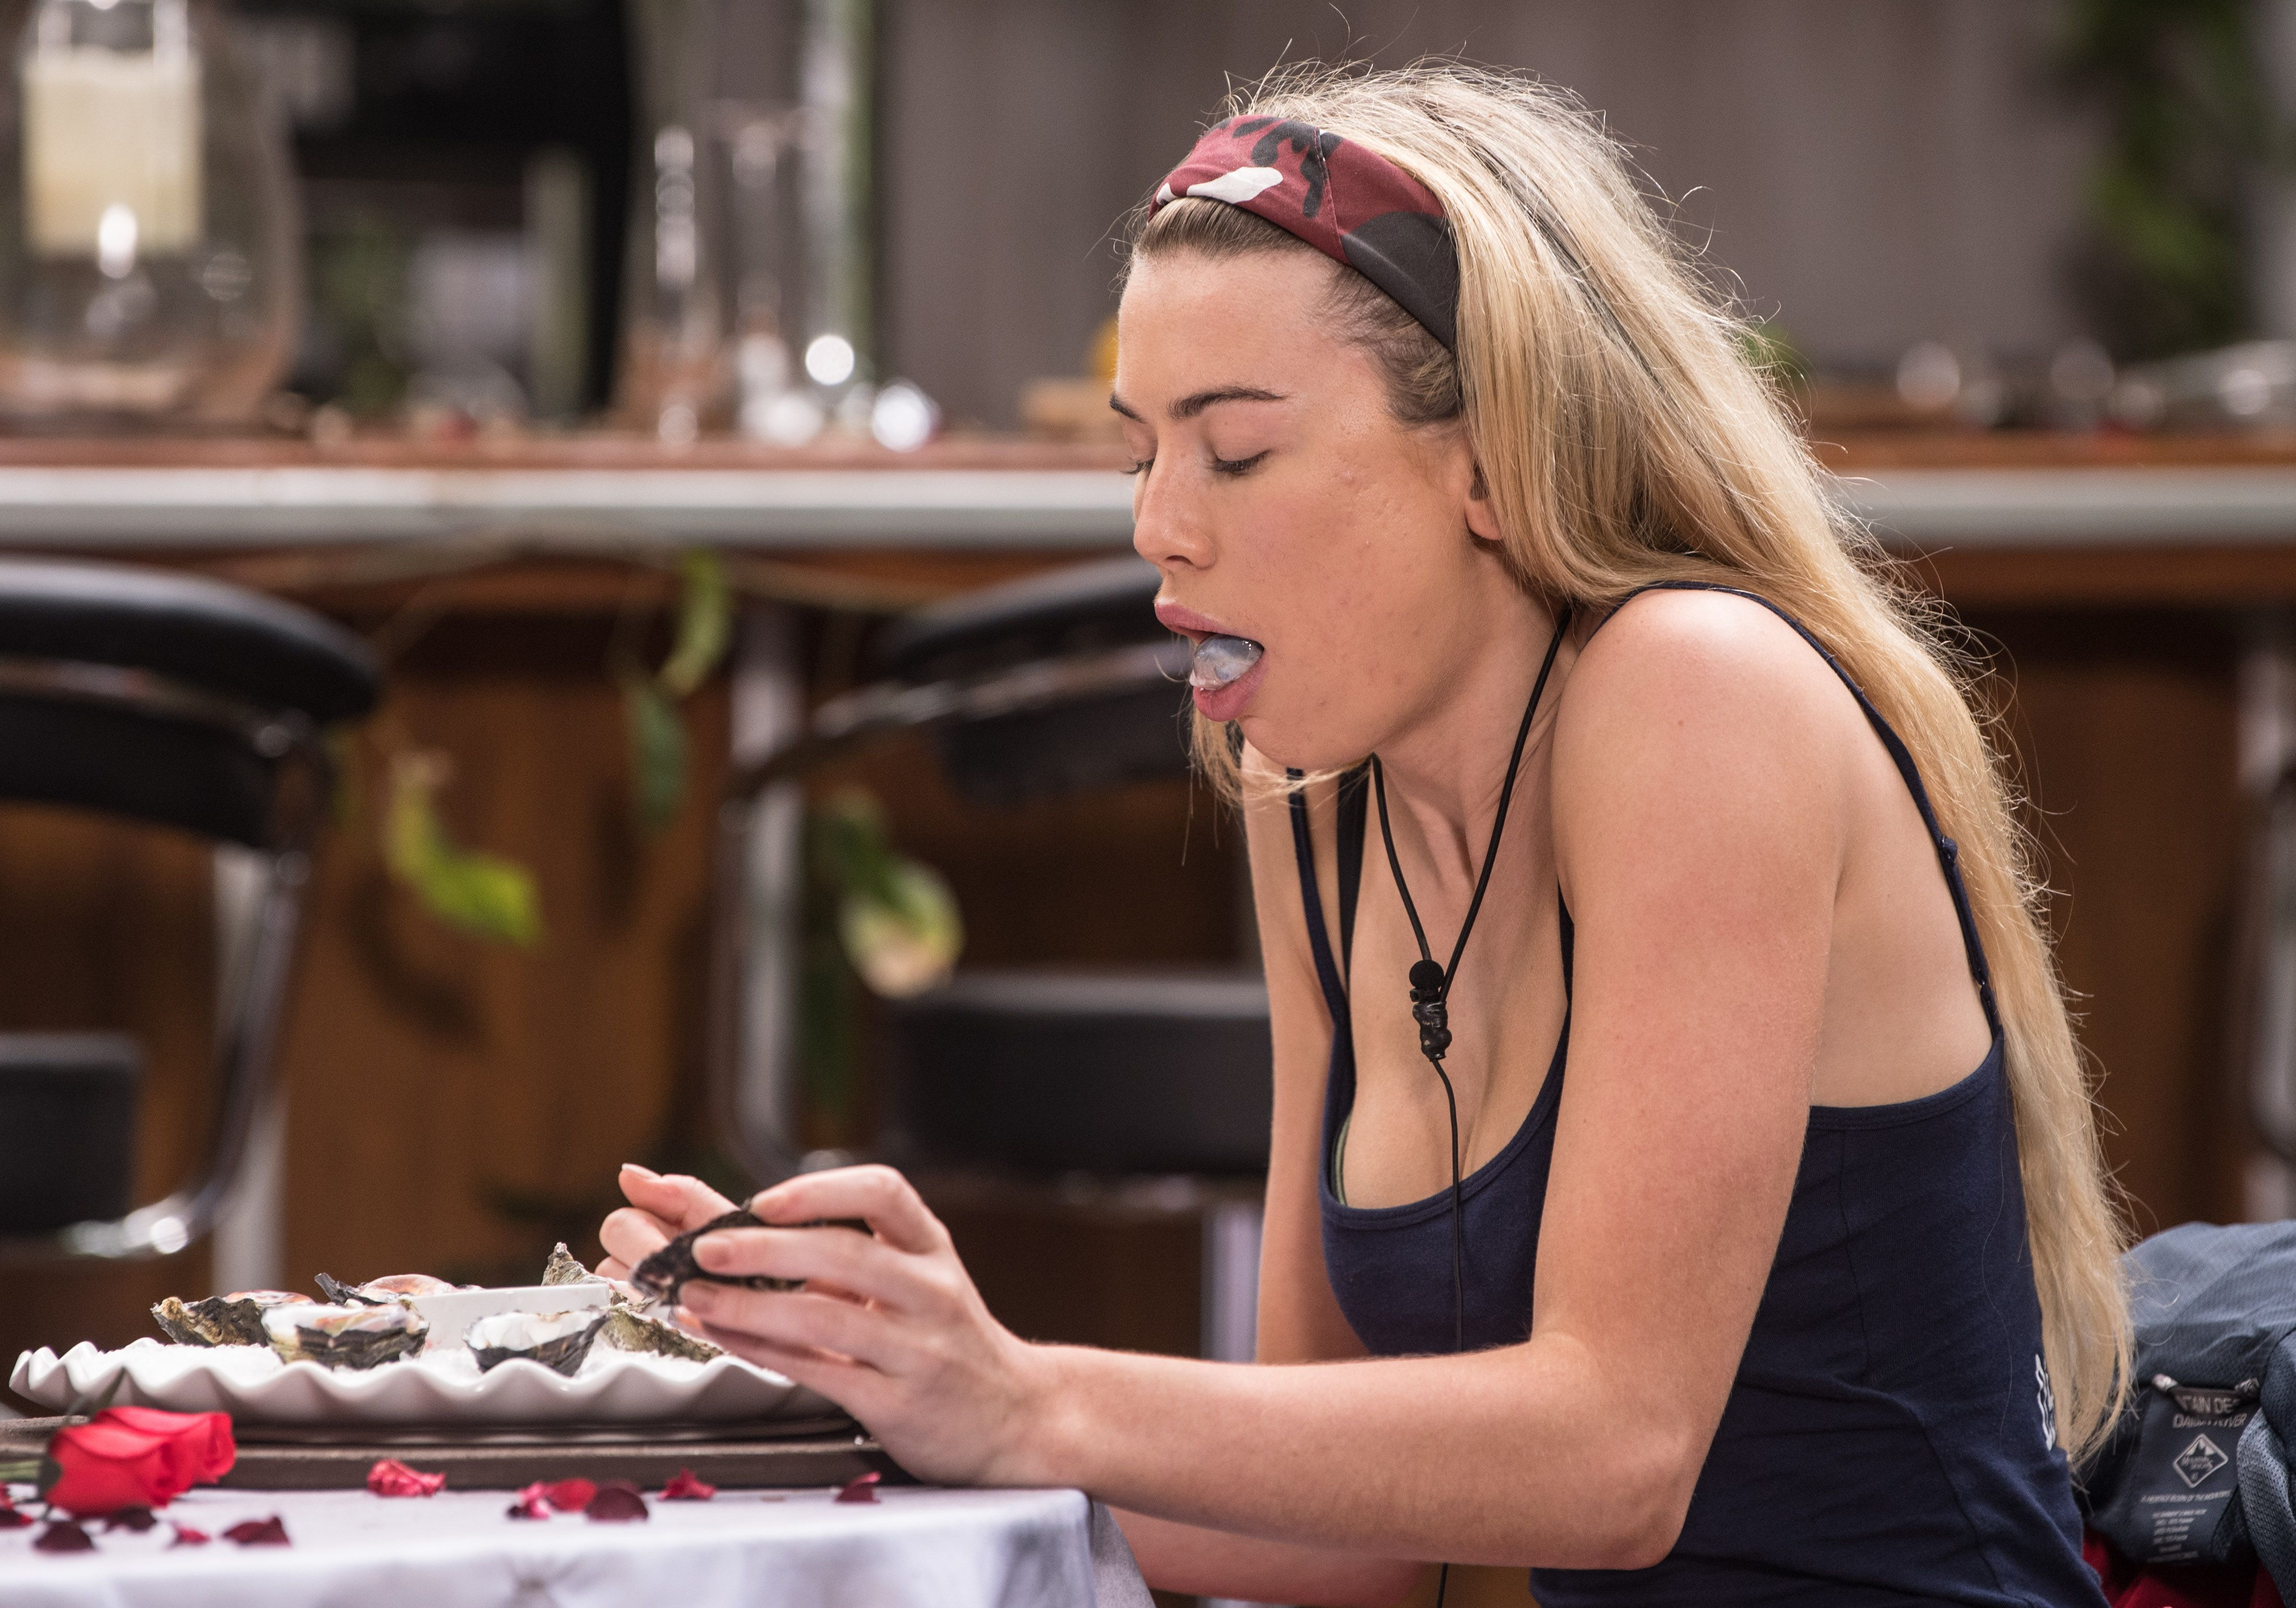 I'm A Celebrity Has Made A MAJOR Change To Its Bushtucker Eating Challenges